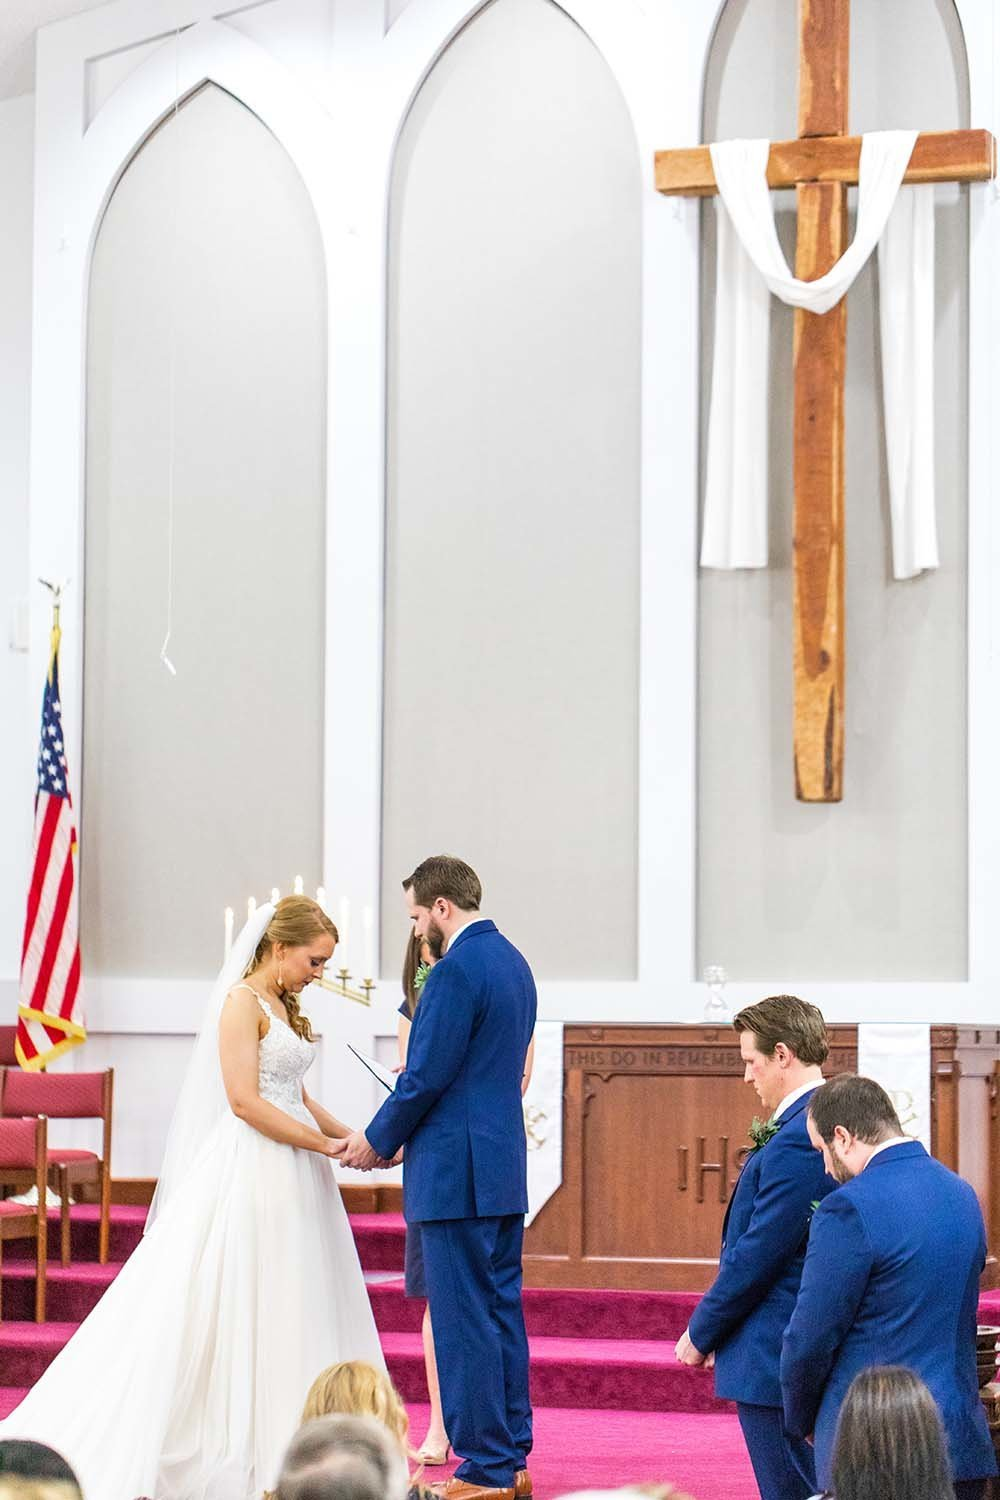 St.-Clairsville-Ohio-Wedding-Church-Ceremony-Couple-With-Cross